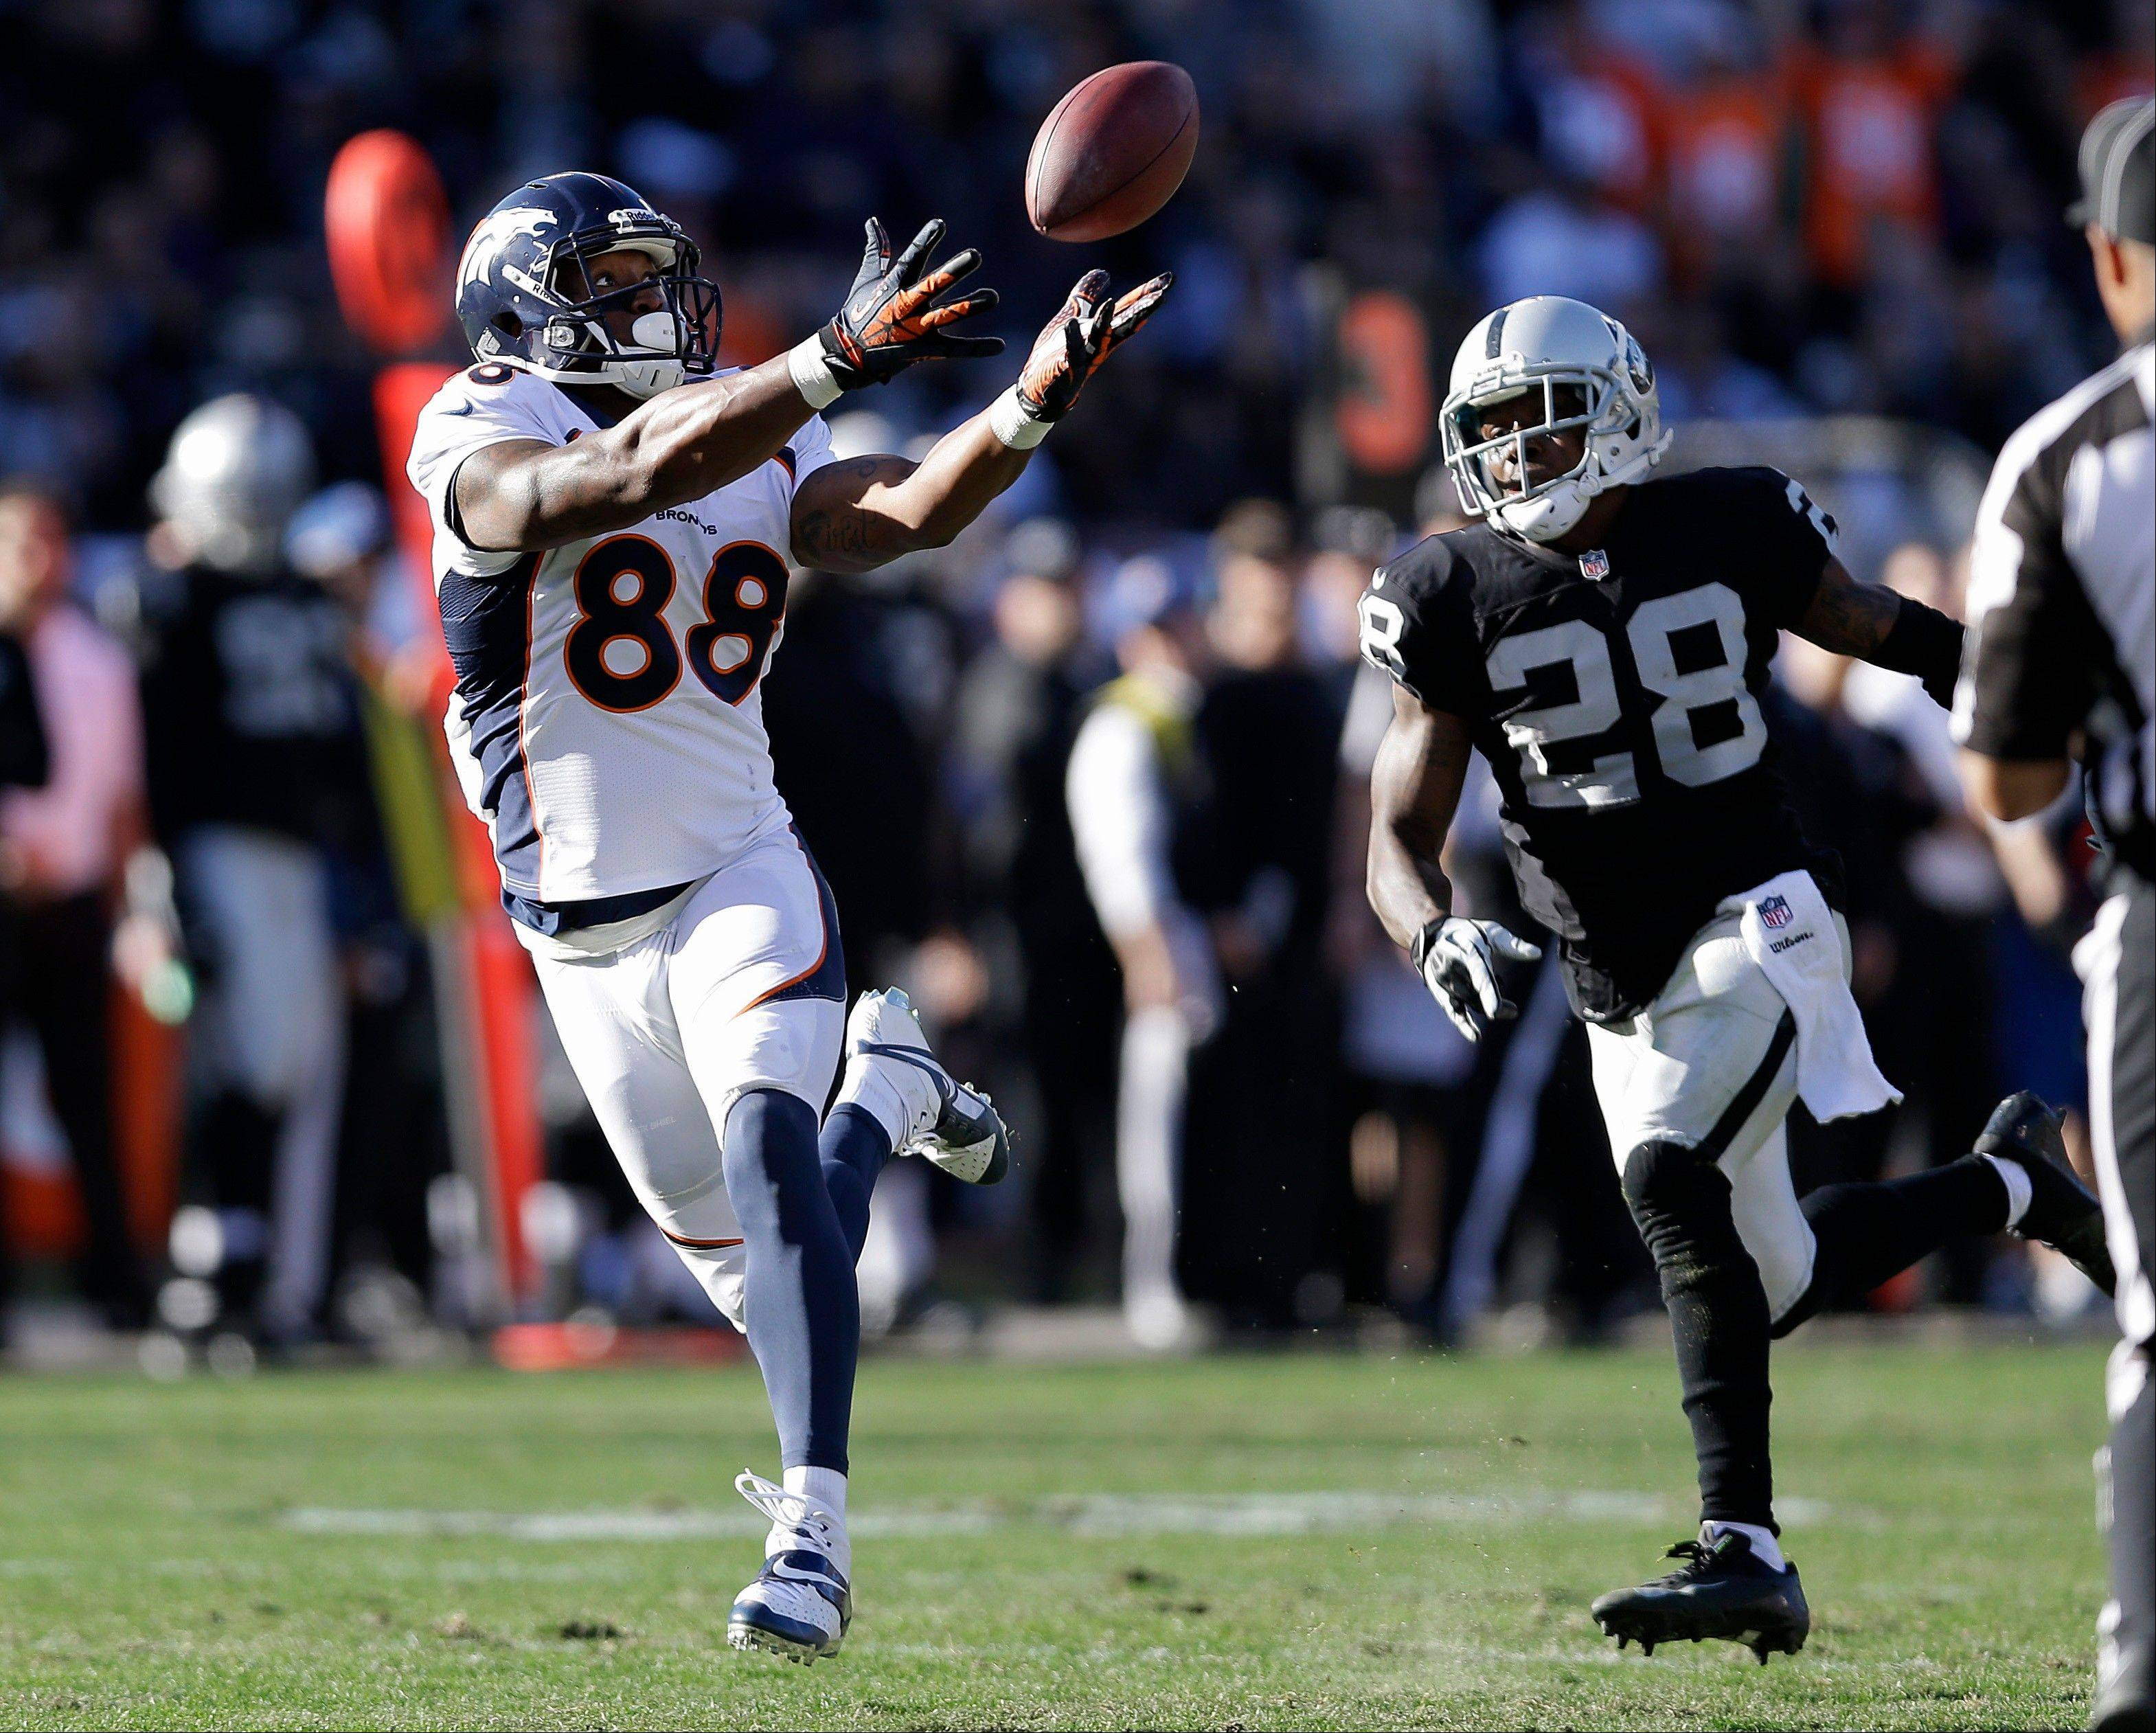 Denver Broncos wide receiver Demaryius Thomas catches a 63-yard touchdown pass from quarterback Peyton Manning during the second quarter of Sunday�s game in Oakland. With this TD, the Broncos surpassed the 2007 New England Patriots for the most points scored in a season.